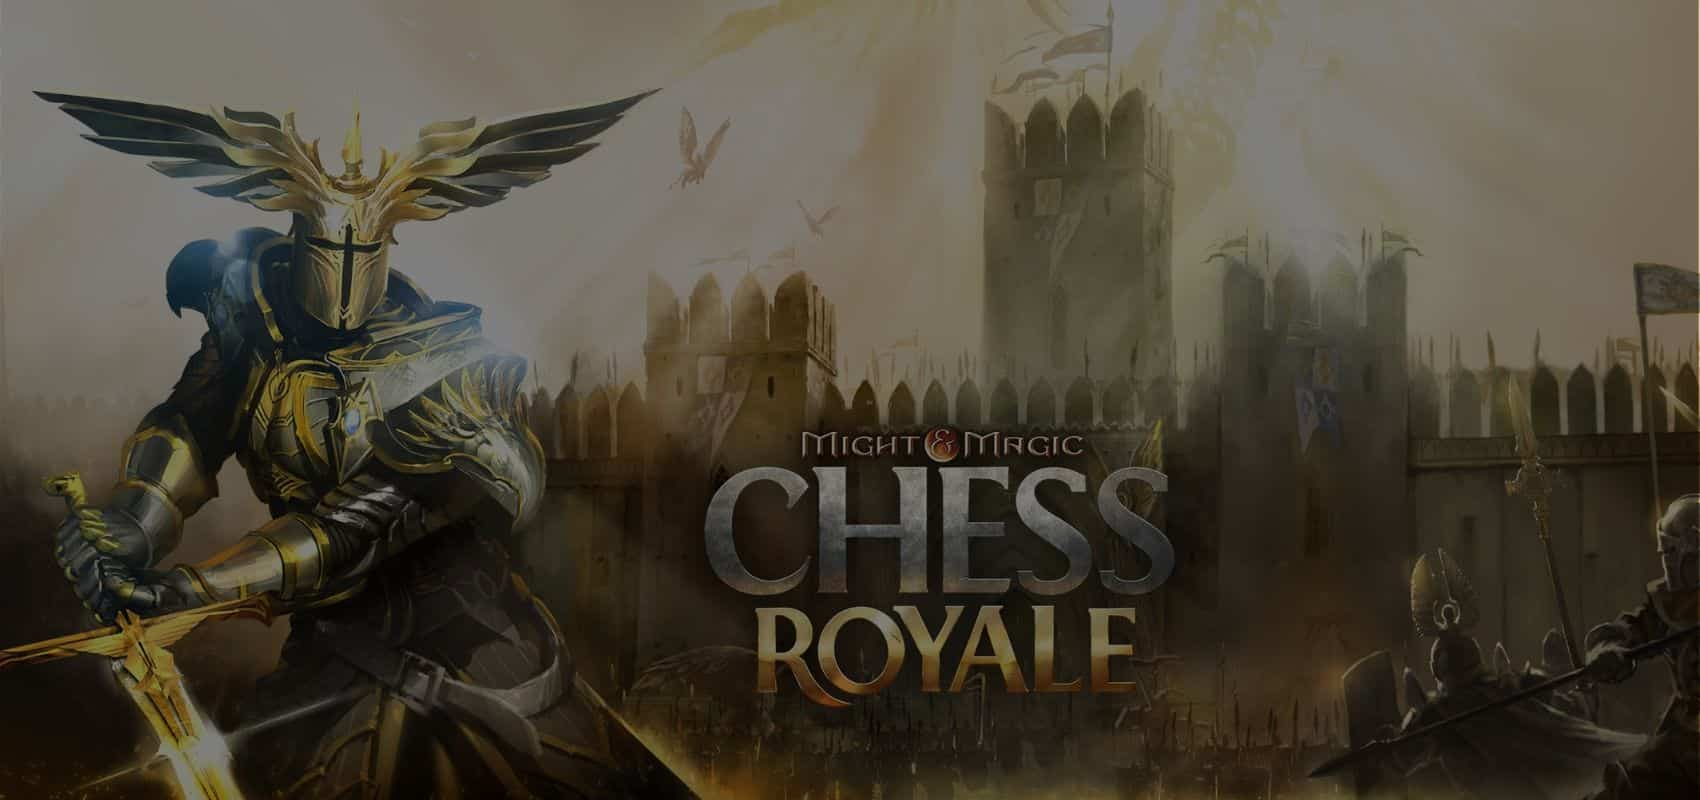 Ubisoft announces Might and Magic: Chess Royale, the 100-player strategic autobattler